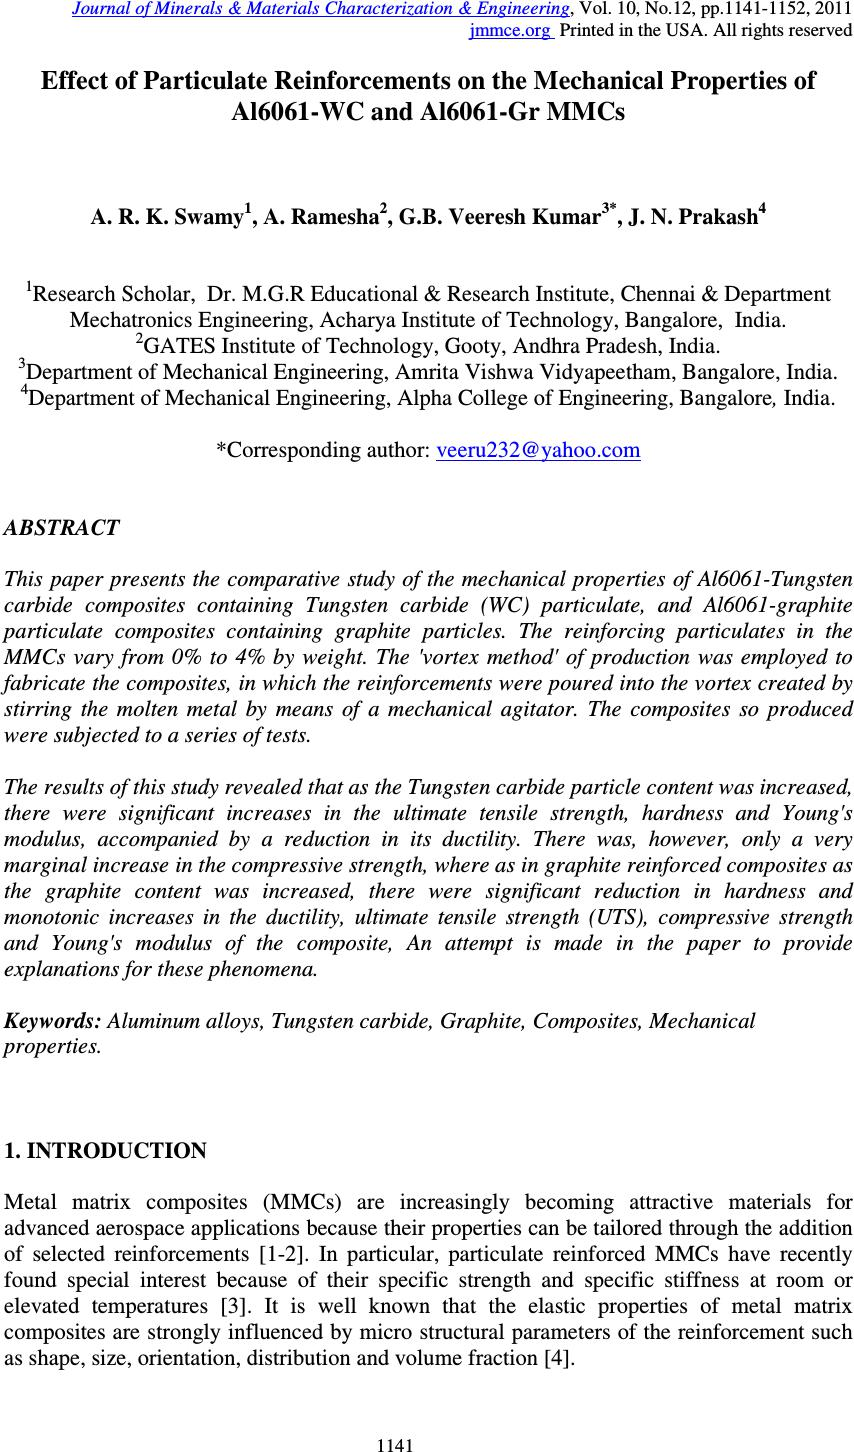 effect of particulate reinforcements on the mechanical properties  effect of particulate reinforcements on the mechanical properties of al6061 wc and al6061 gr mmcs